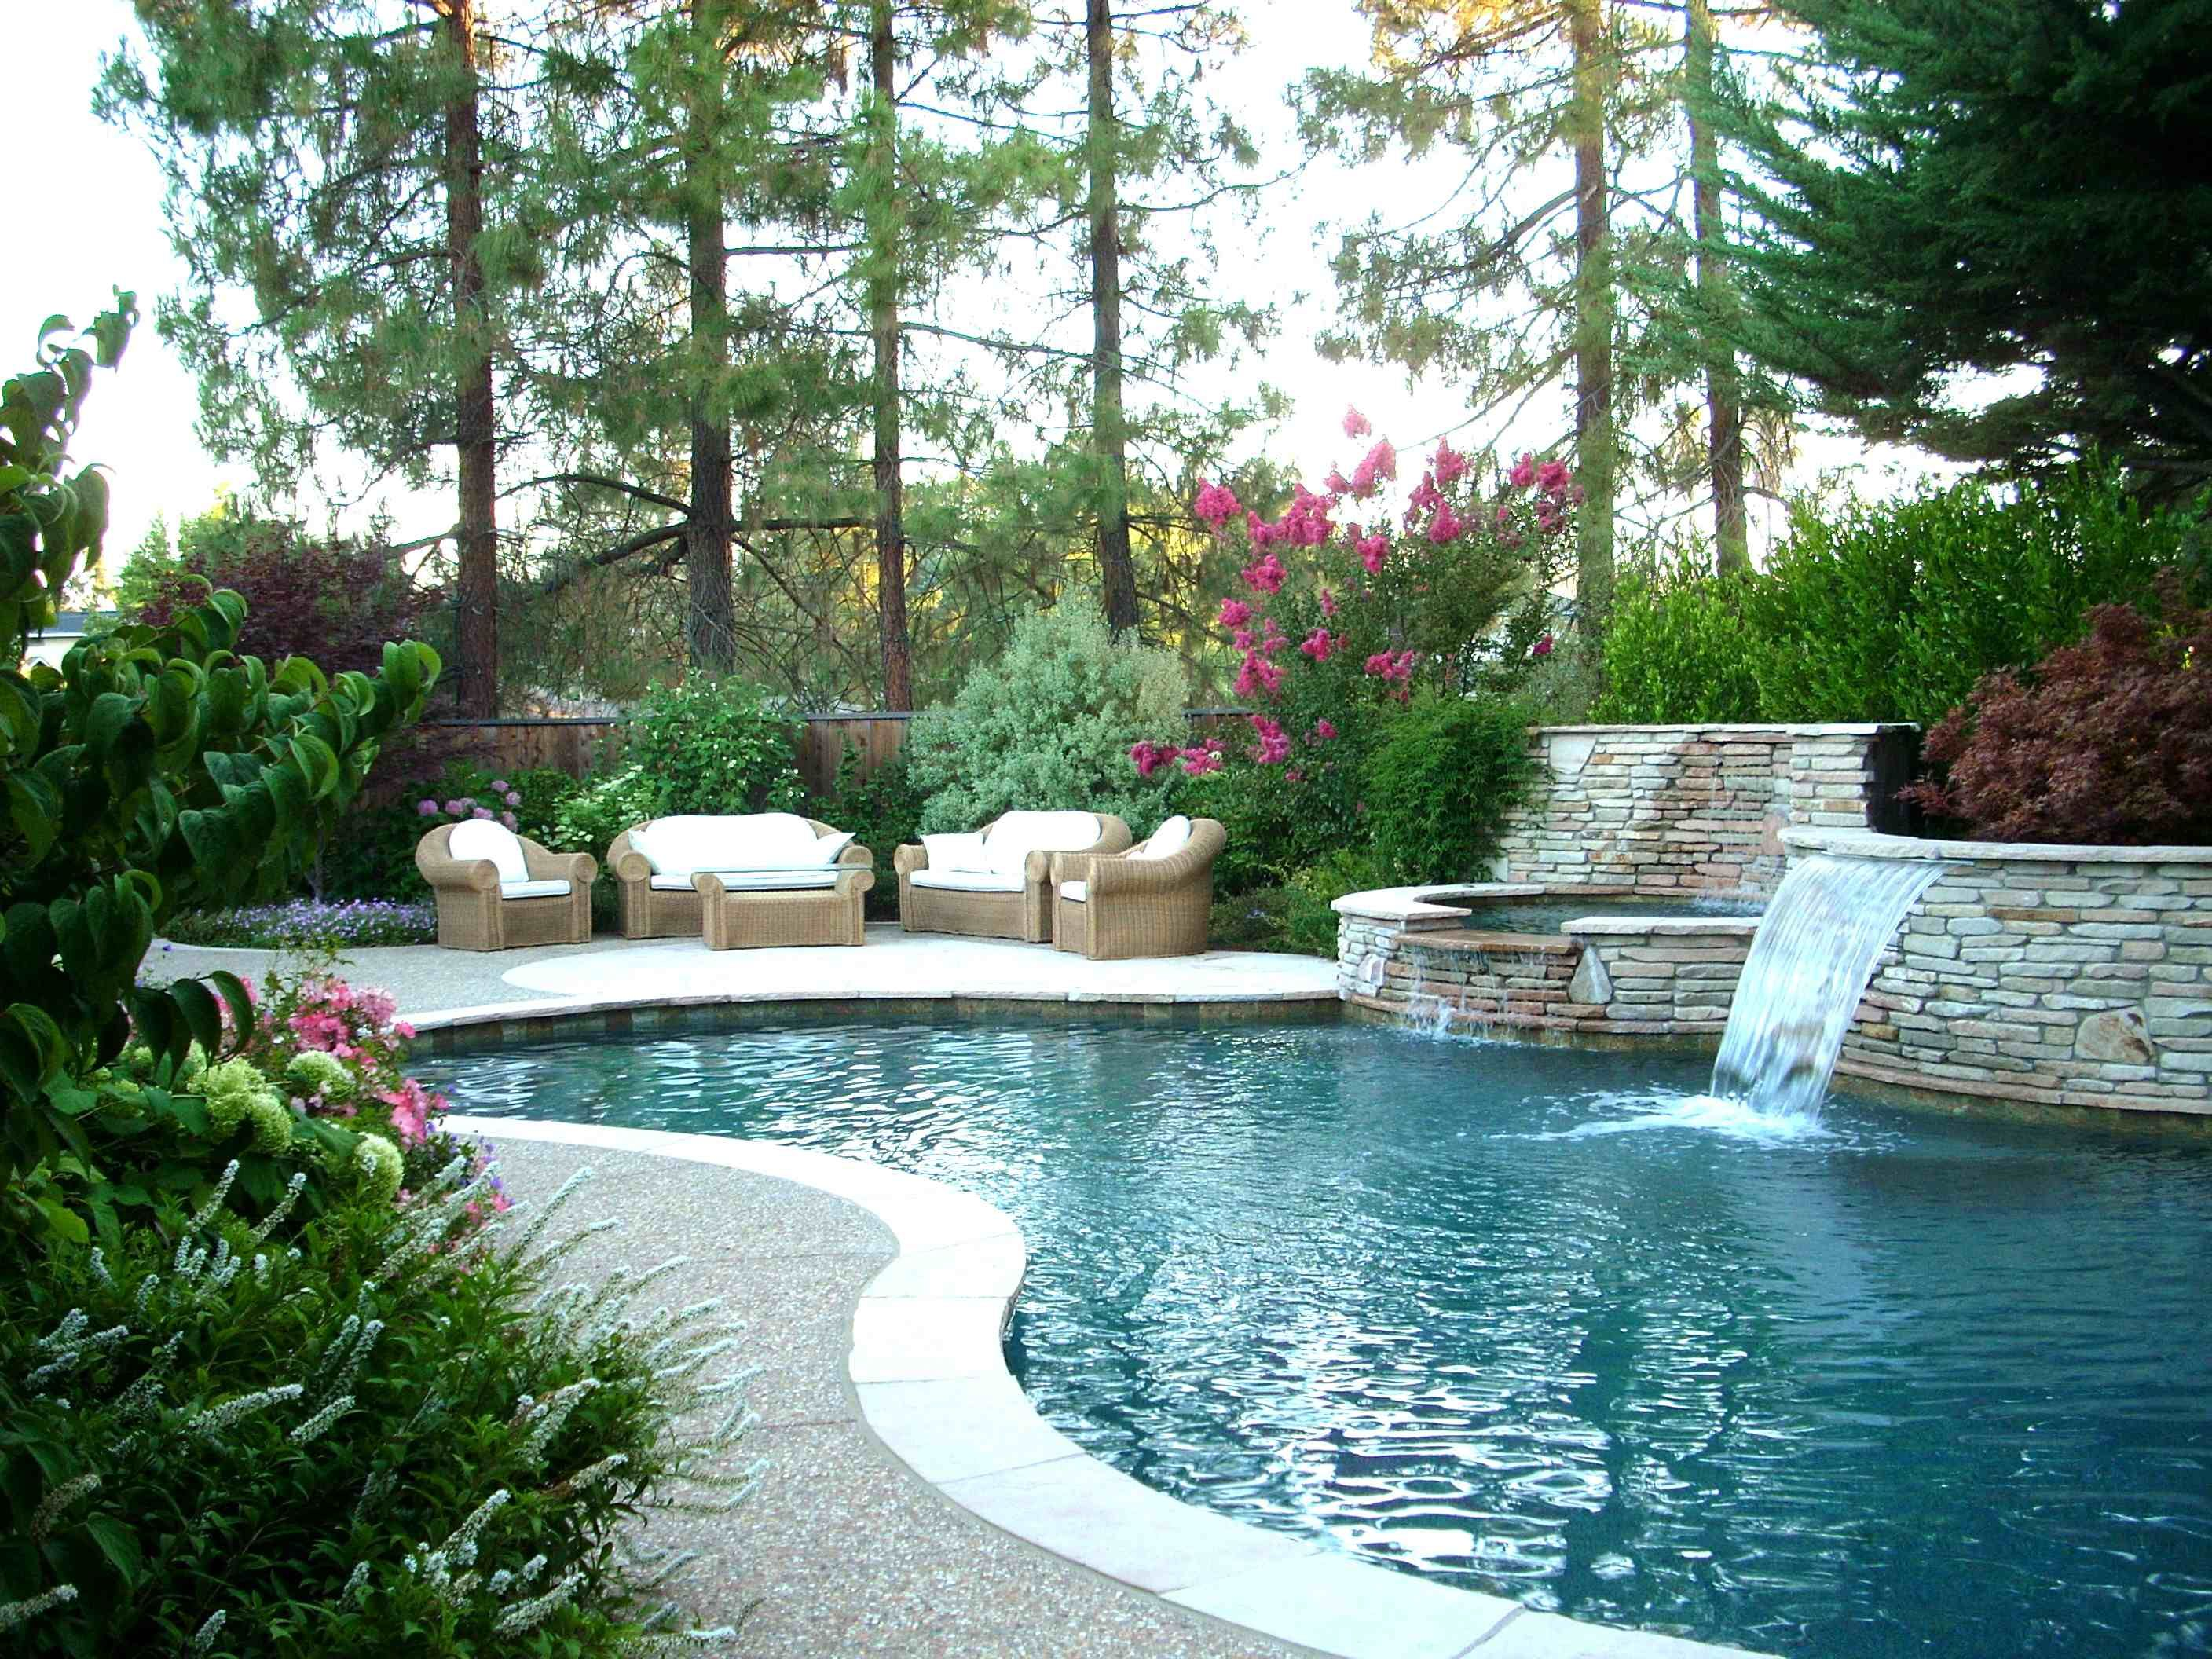 Backyard Landscape Design Ideas backyard landscape images backyard landscape on a budget Landscaped Pool Pictures Landscape Design Ideas For Backyard Gardens In Danville Pleasanton